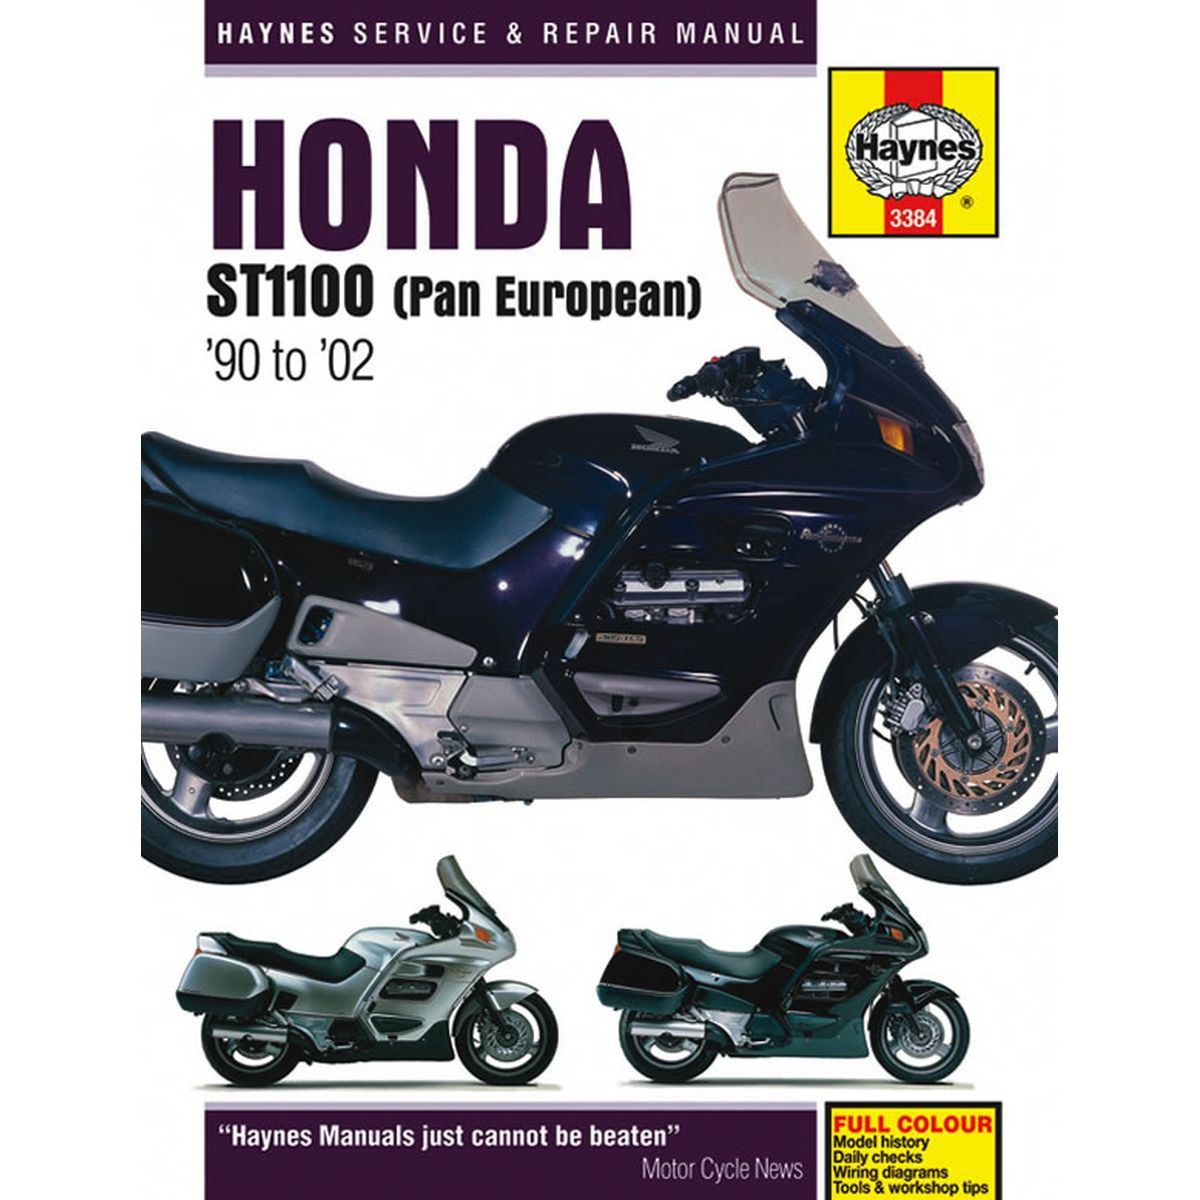 manual haynes for 1993 honda st 1100 ap pan european abs. Black Bedroom Furniture Sets. Home Design Ideas